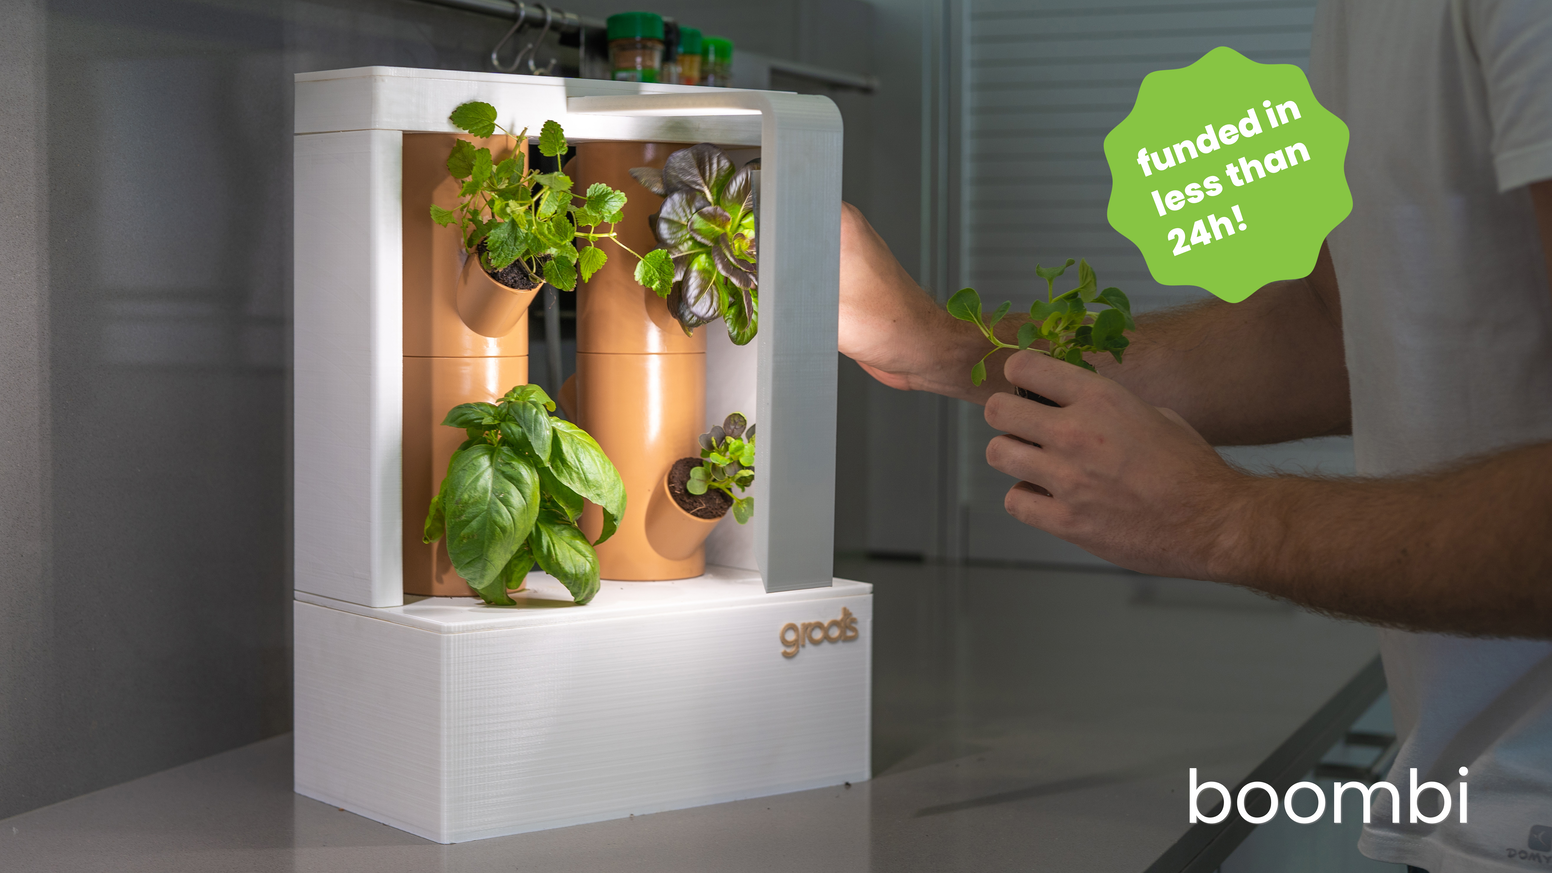 The home vertical garden that helps you grow your own food anywhere & anytime with zero effort .